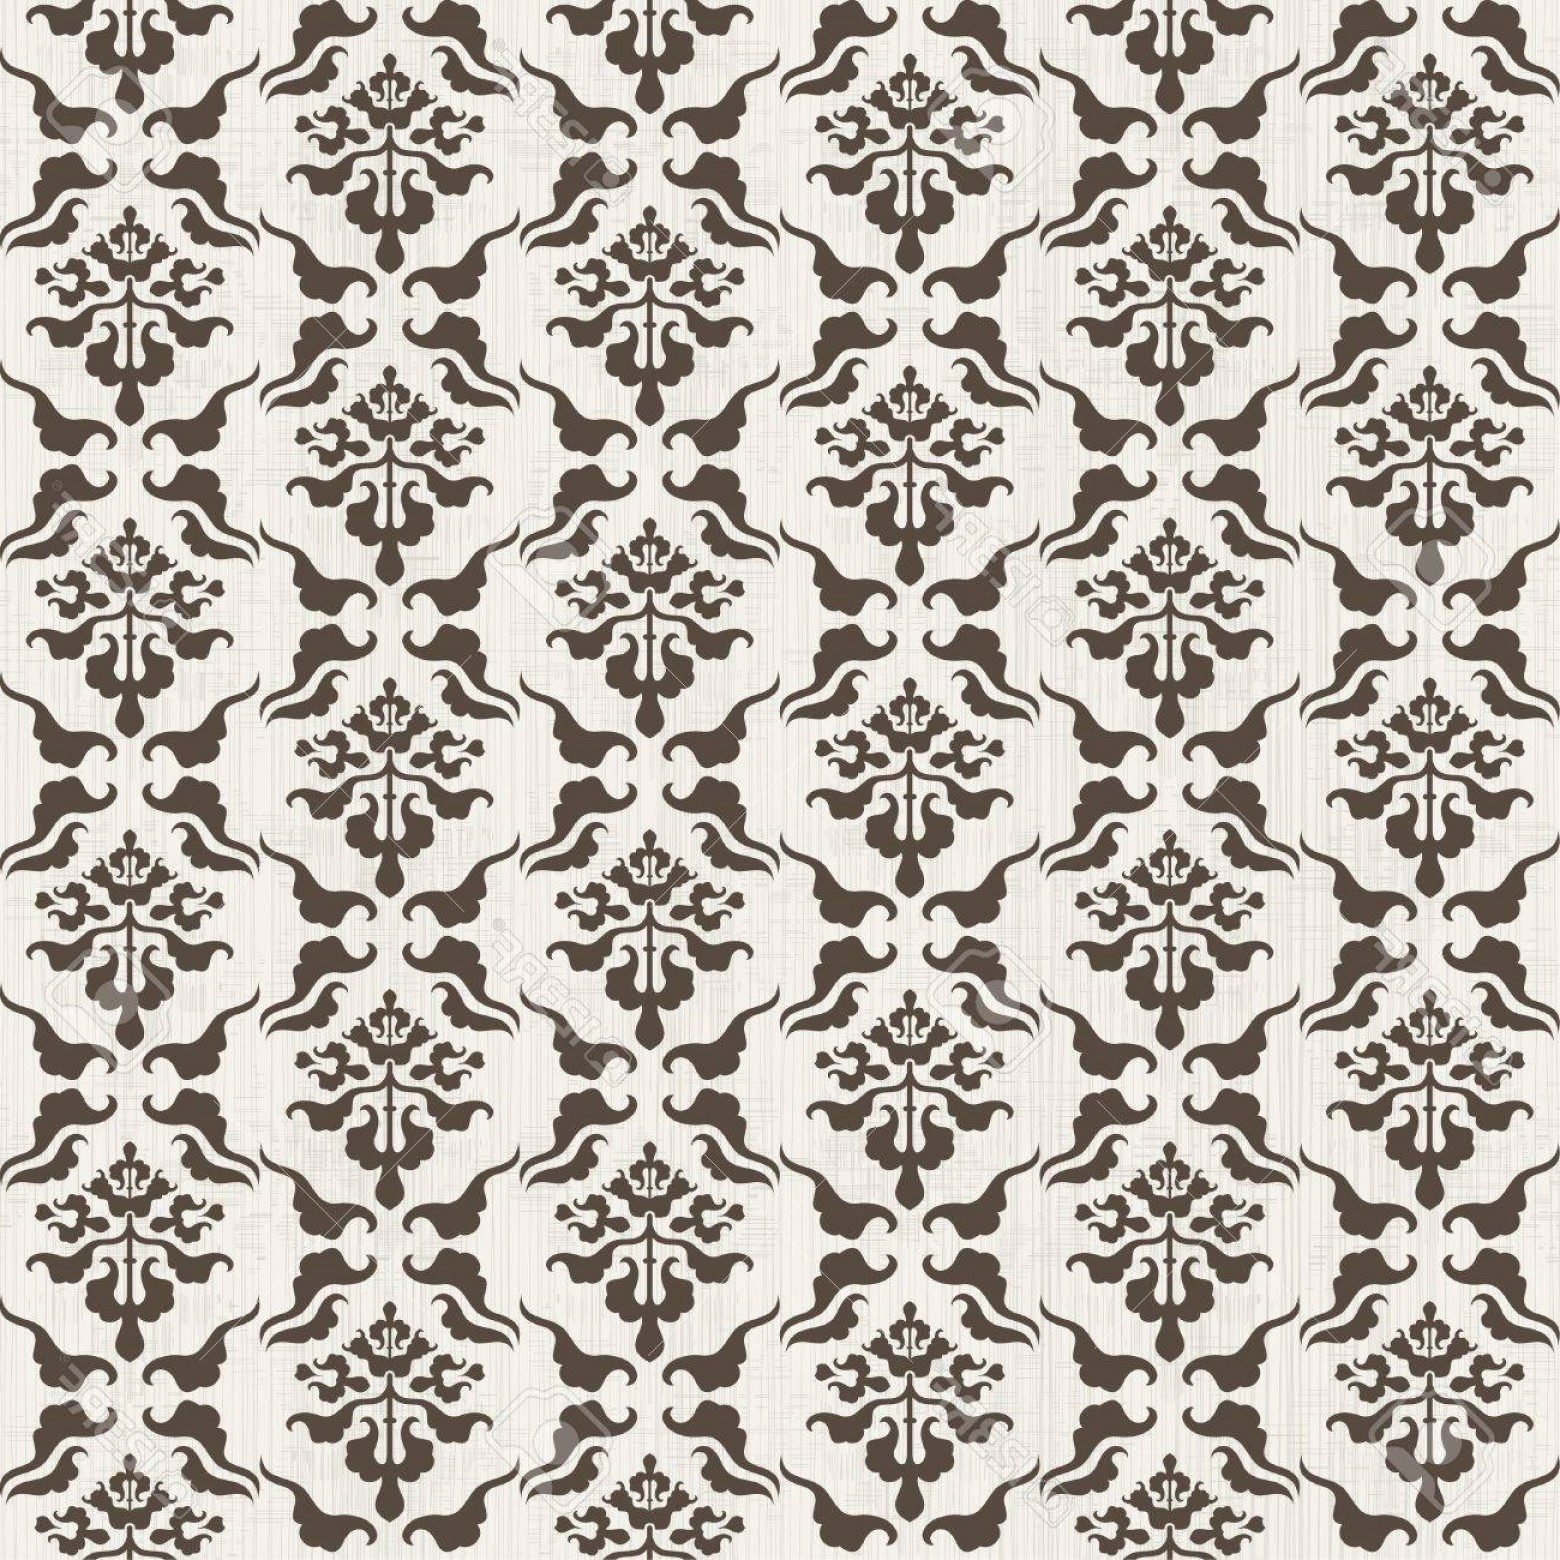 Victorian Motif Vector: Photoseamless Damask Pattern With Victorian Motif